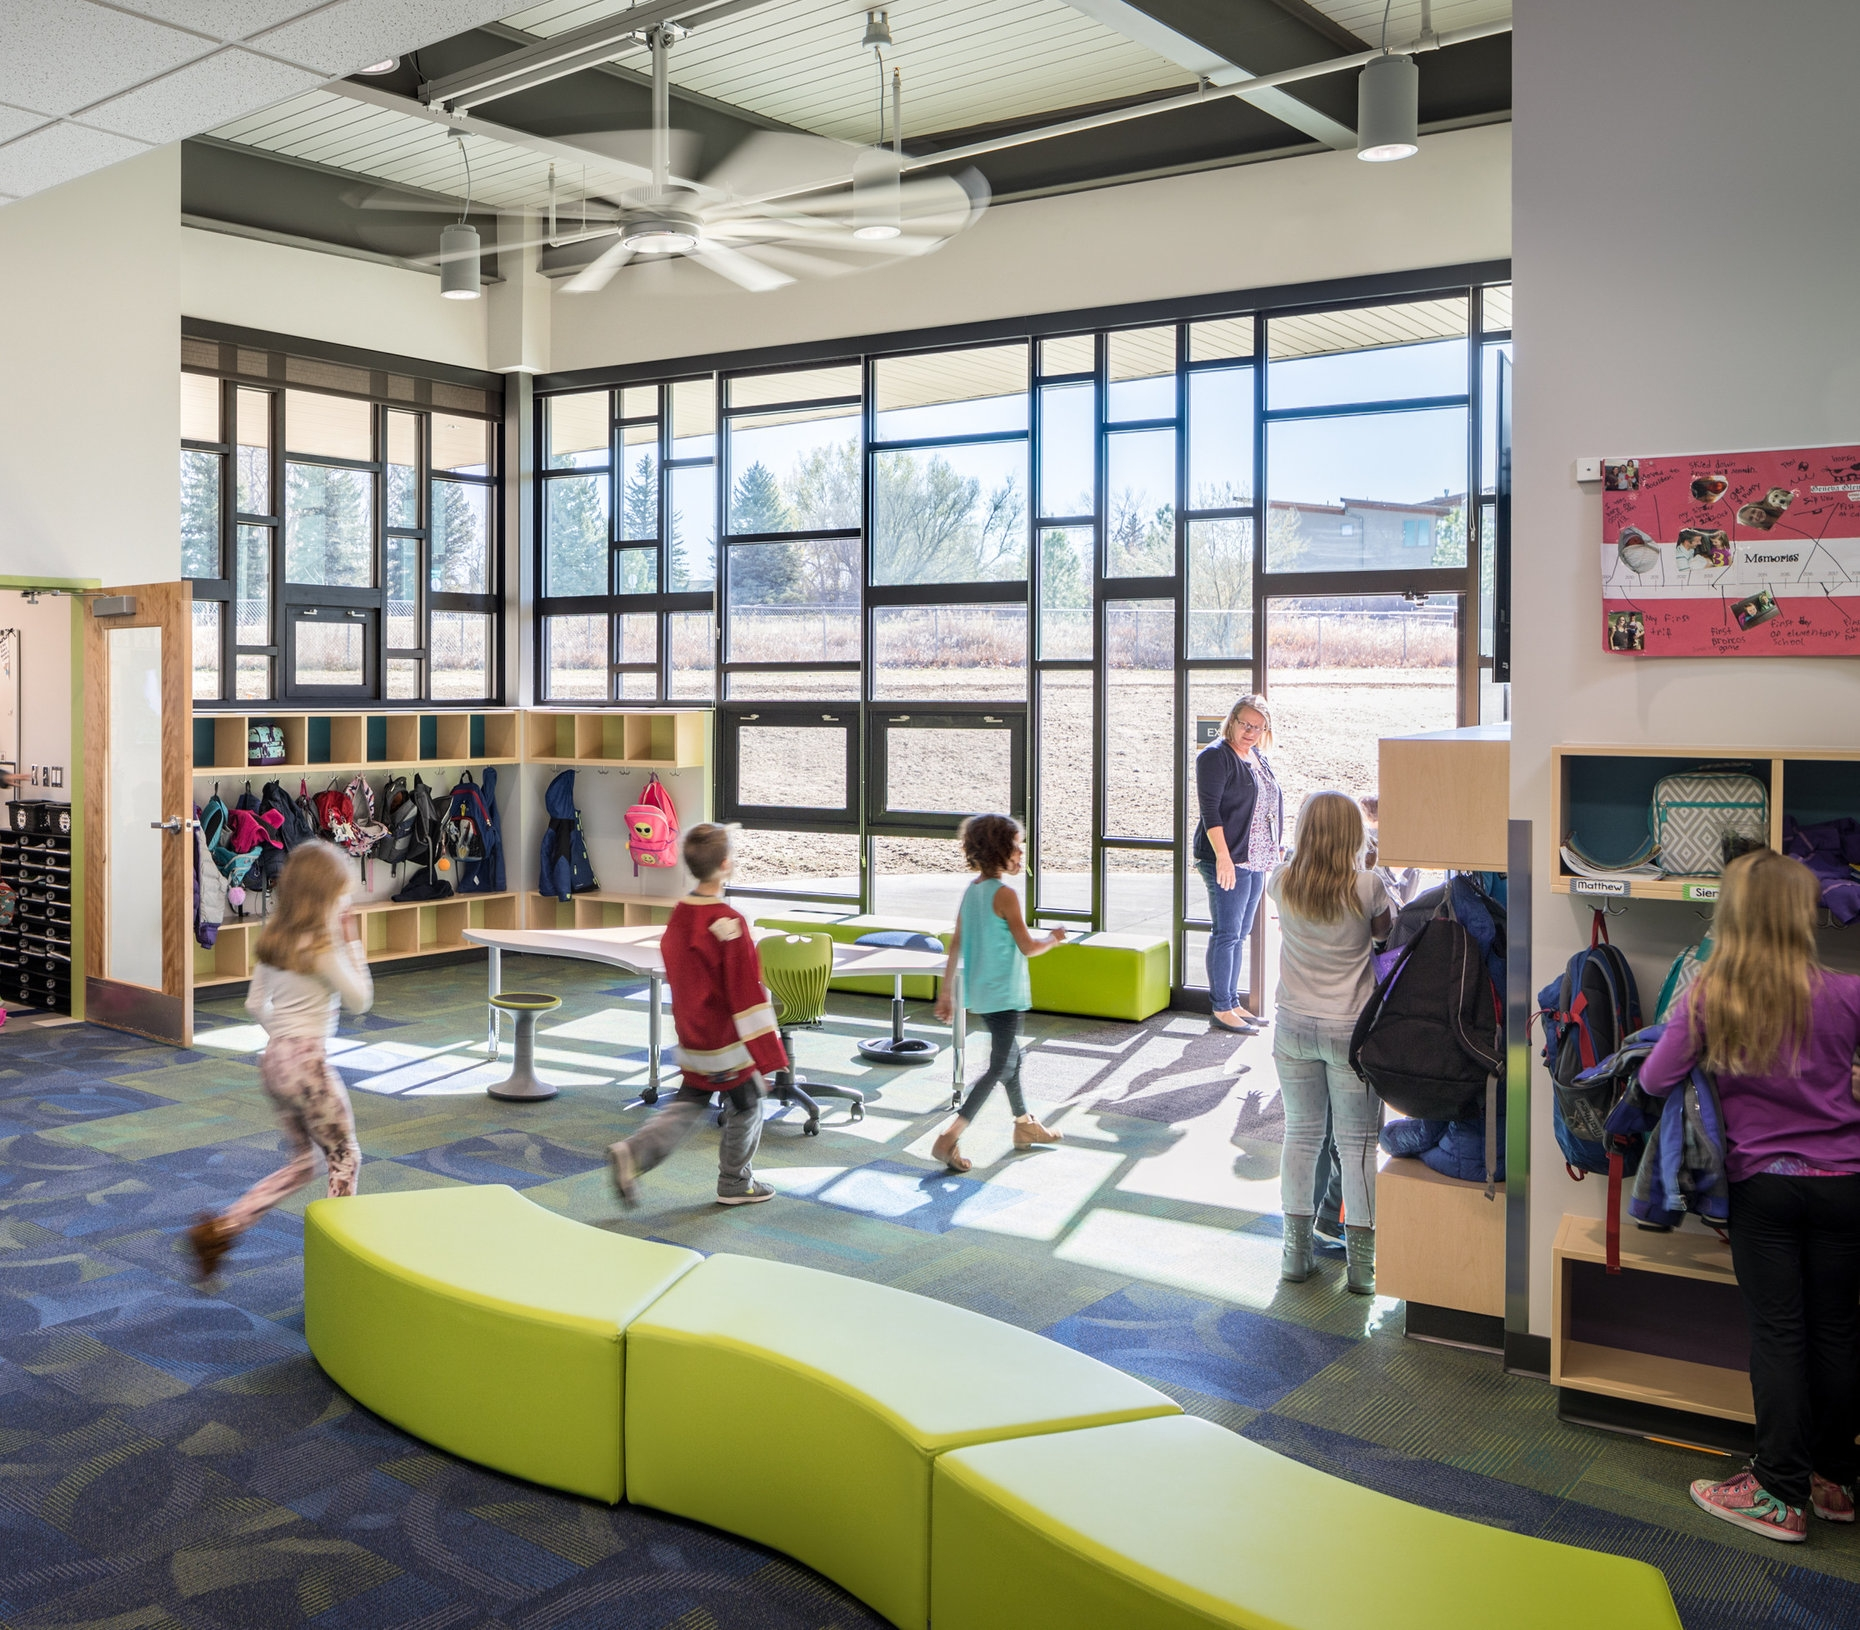 Phase Projects - In addition to the Blueprint Schools, all schools are receiving funds for deferred maintenance and Innovation. Schools access their Innovation Funds ($200,000 for each elementary schools; $400,000 for each middle school; $600,000 for each K-8 school; and $800,000 for each high school) during the Bond Phase that is assigned to their school.BVSD has established processes and guidelines to support schools in the use of their funds. The process begins with an idea for use of the funds and grows from there with the support of Kiffany Lychock, Director of Educational Innovation, and Dave Eggen, Director of Educational Facilities Planning. They support these efforts by generating ideas, meeting with staff, and showing examples of innovative spaces while engaging stakeholders.